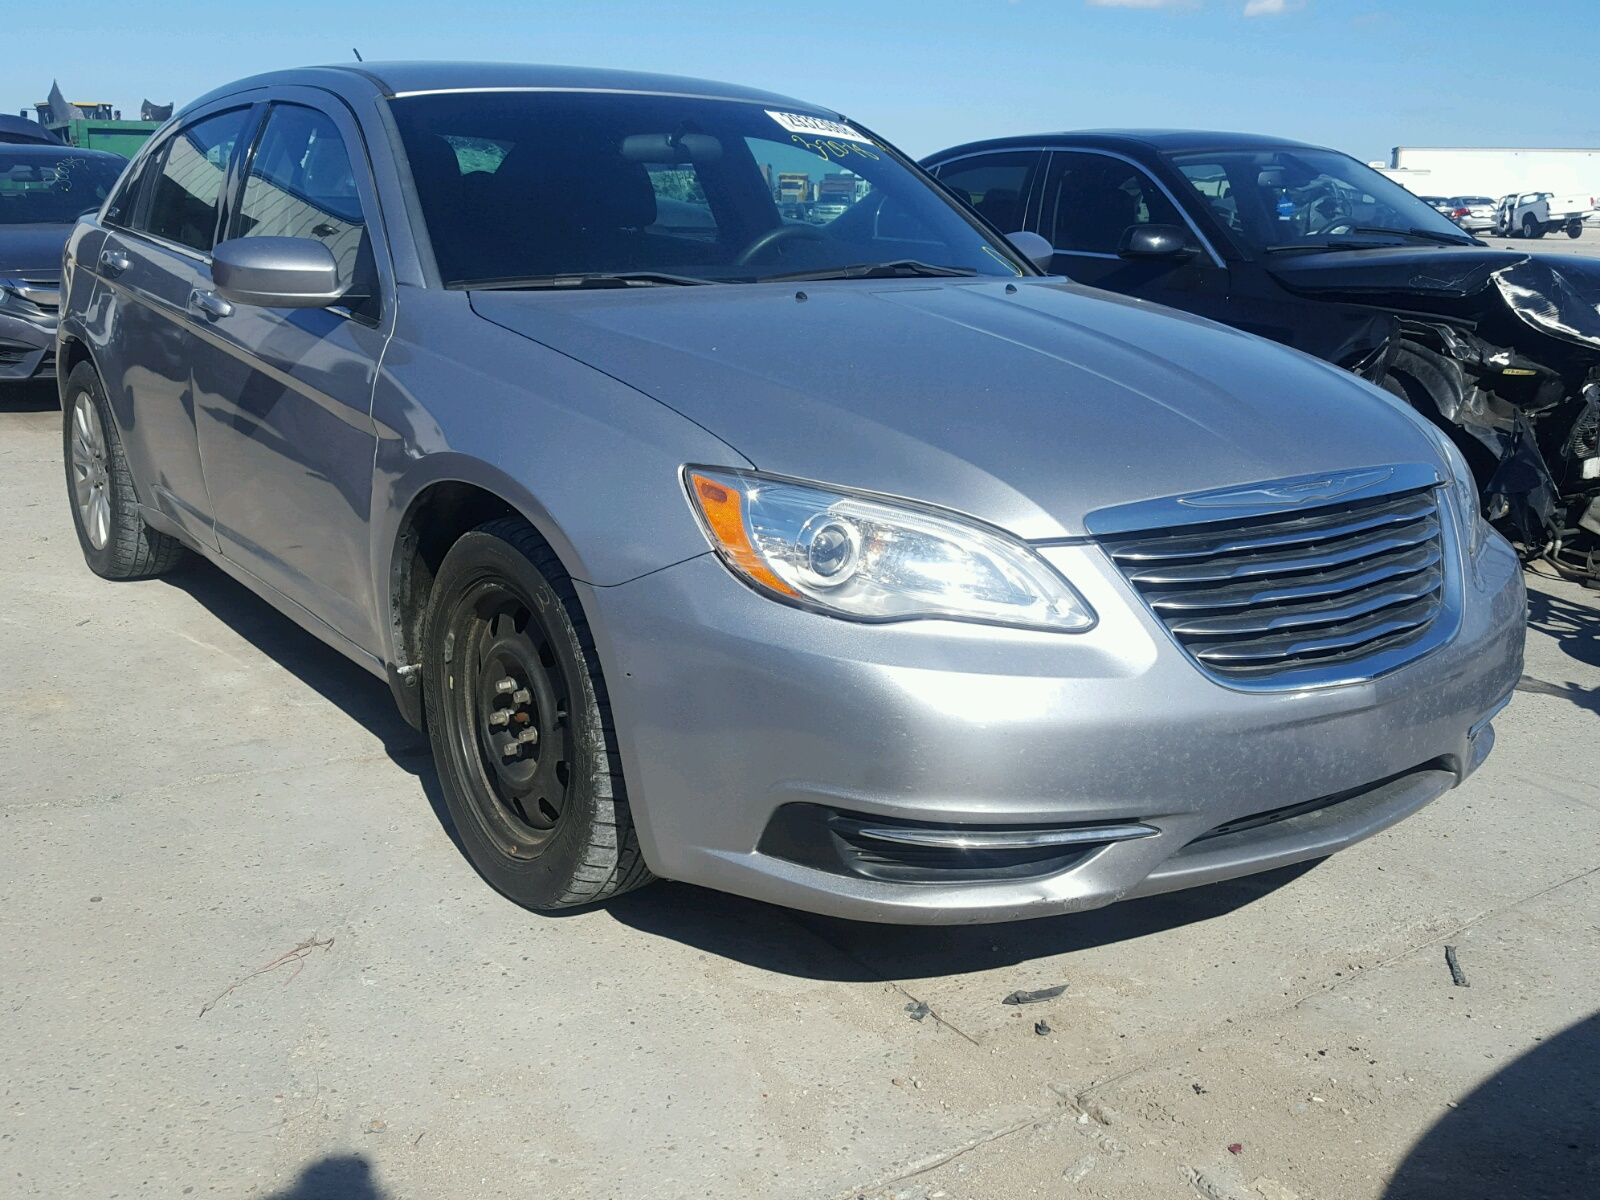 copart on nv en left for lot chrysler auto in reno carfinder blue view tourin online sale salvage auctions title